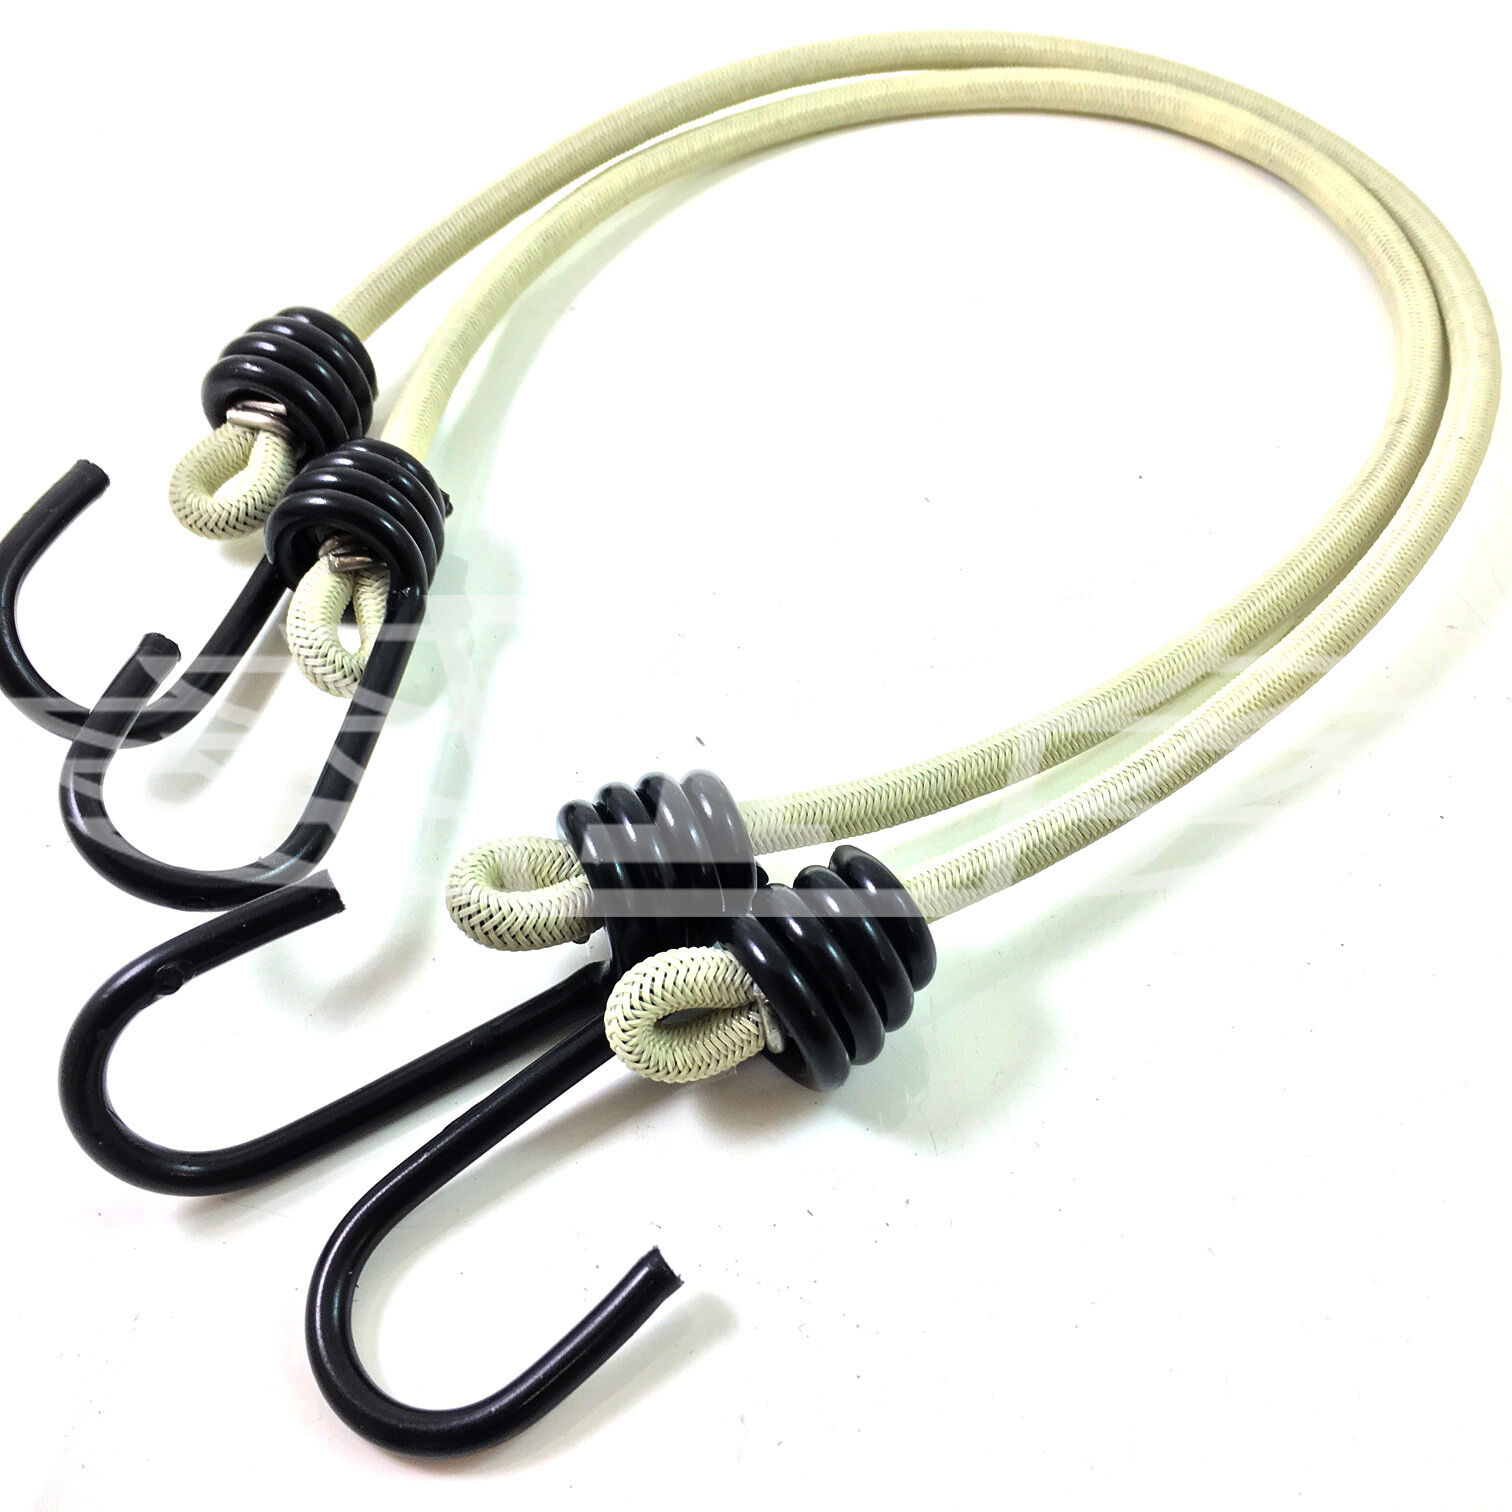 PACK OF 10 6mm x 90cm LONG NATO GREEN BUNGEE CORDS MILITARY ARMY BASHA STRAPS